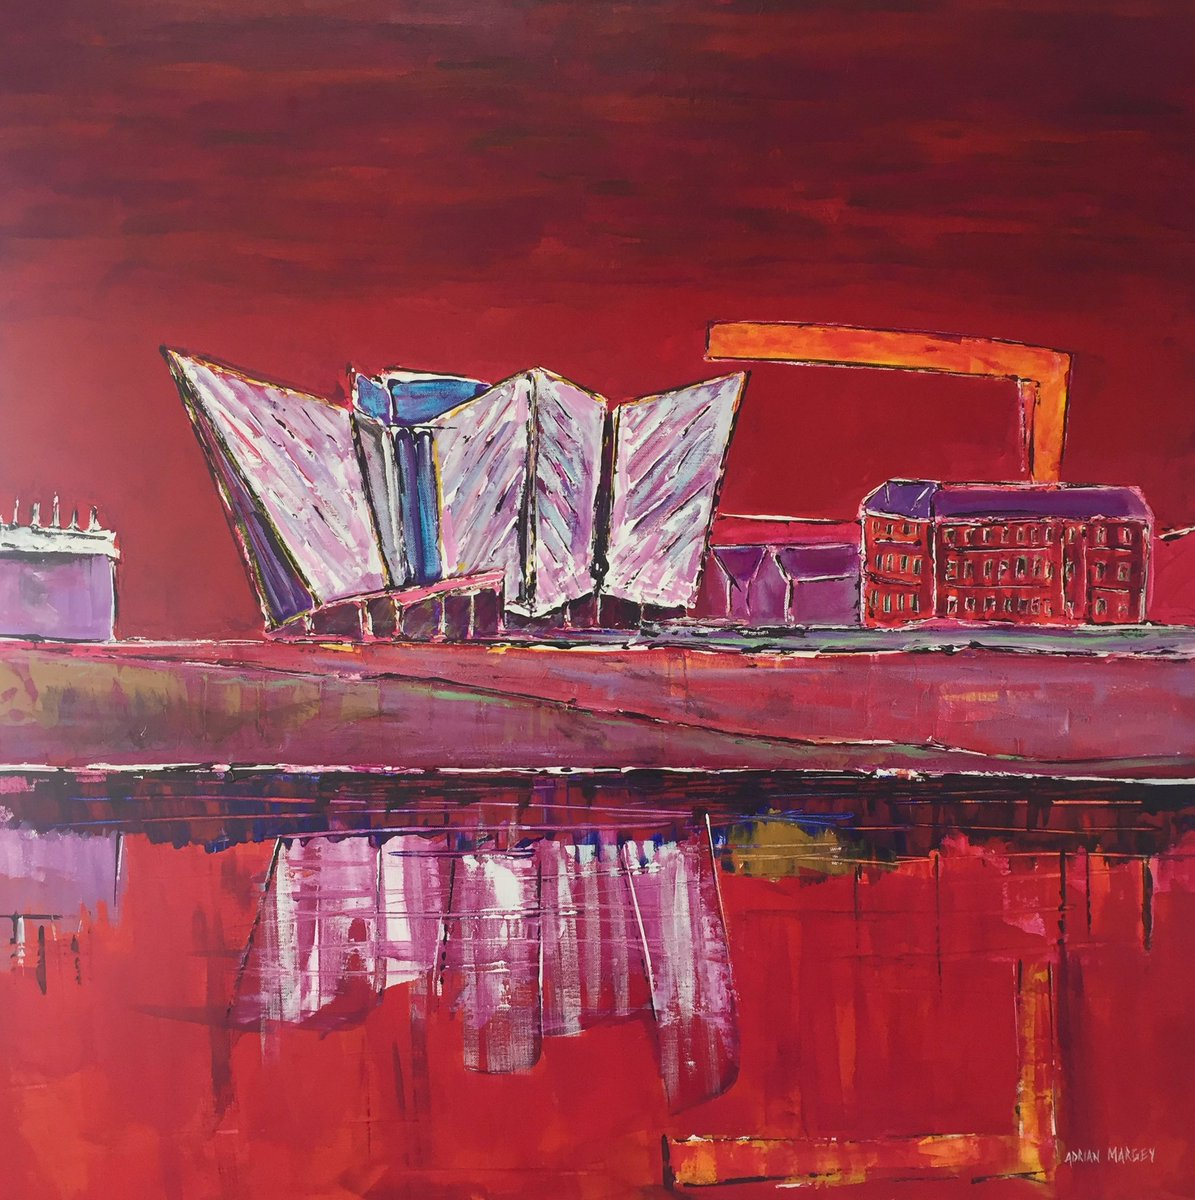 &#39;#Titanic Building, #Belfast&#39; on show in my #Portrush Studio &amp; Gallery this weekend...open again Saturday &amp; Sunday: 11am - 6pm.<br>http://pic.twitter.com/MbSaJXOpvG